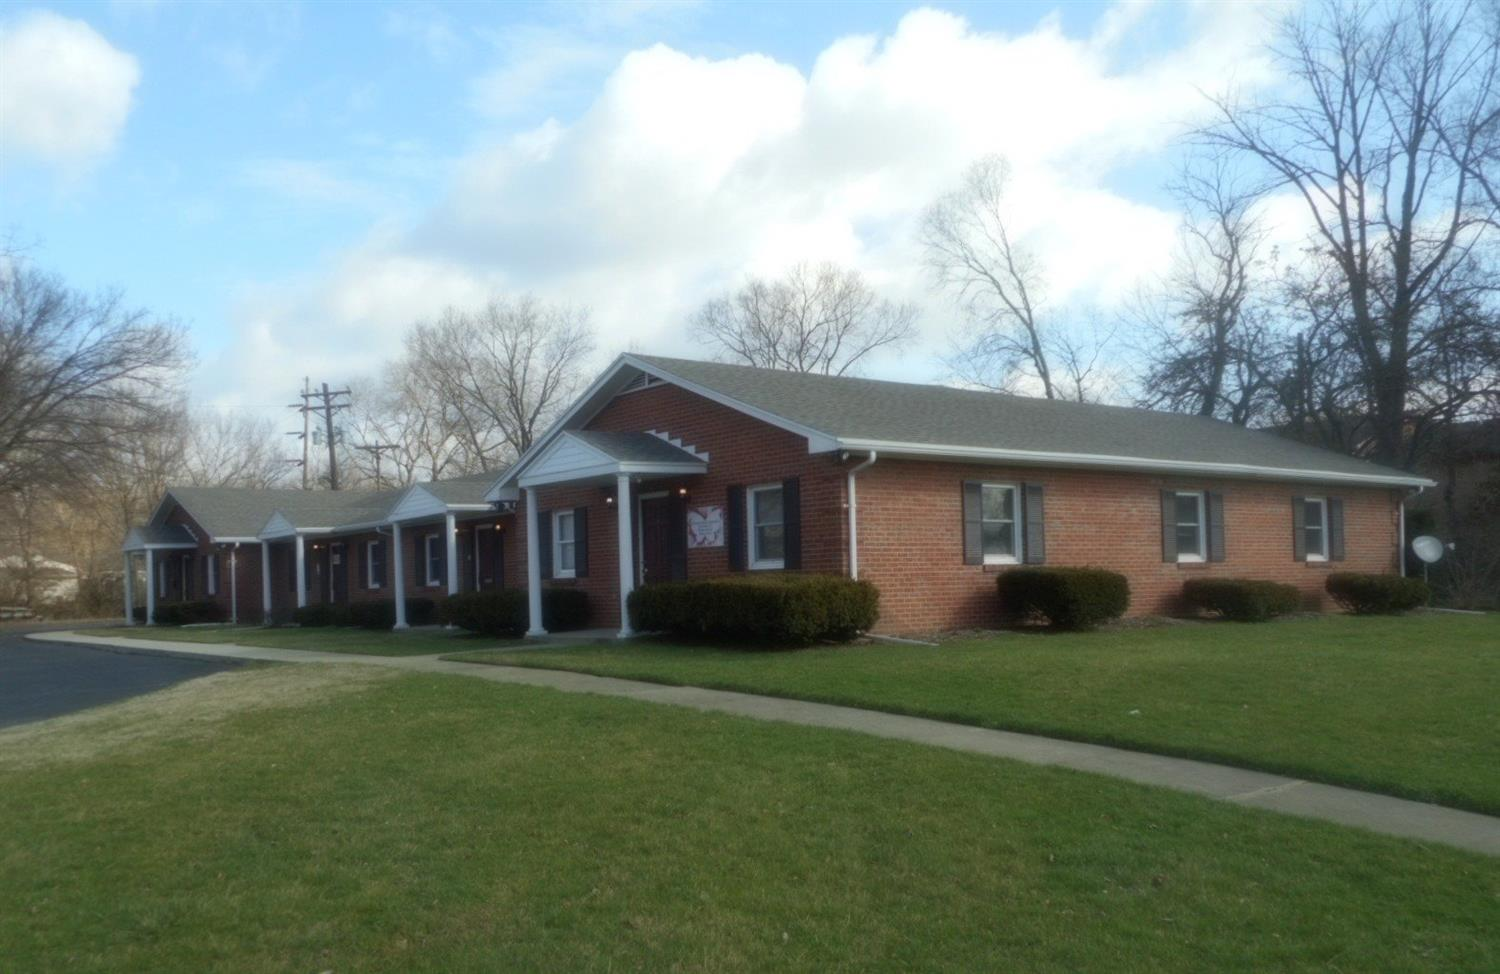 Photo 2 for 3925 Roosevelt Blvd Middletown South, OH 45044